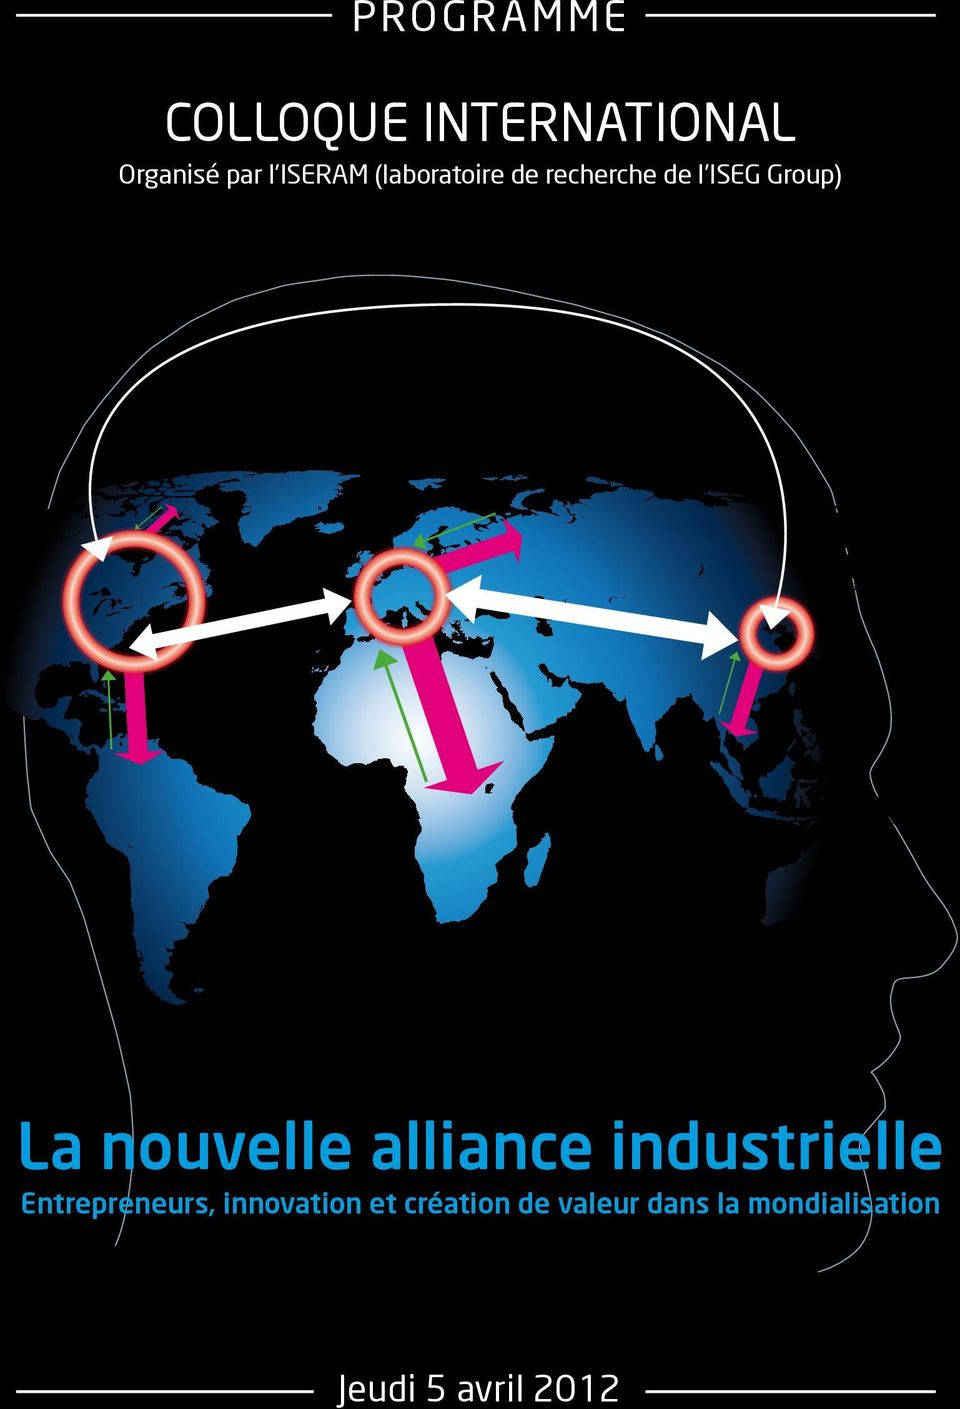 nouvelle alliance industrielle Entrepreneurs, innovation